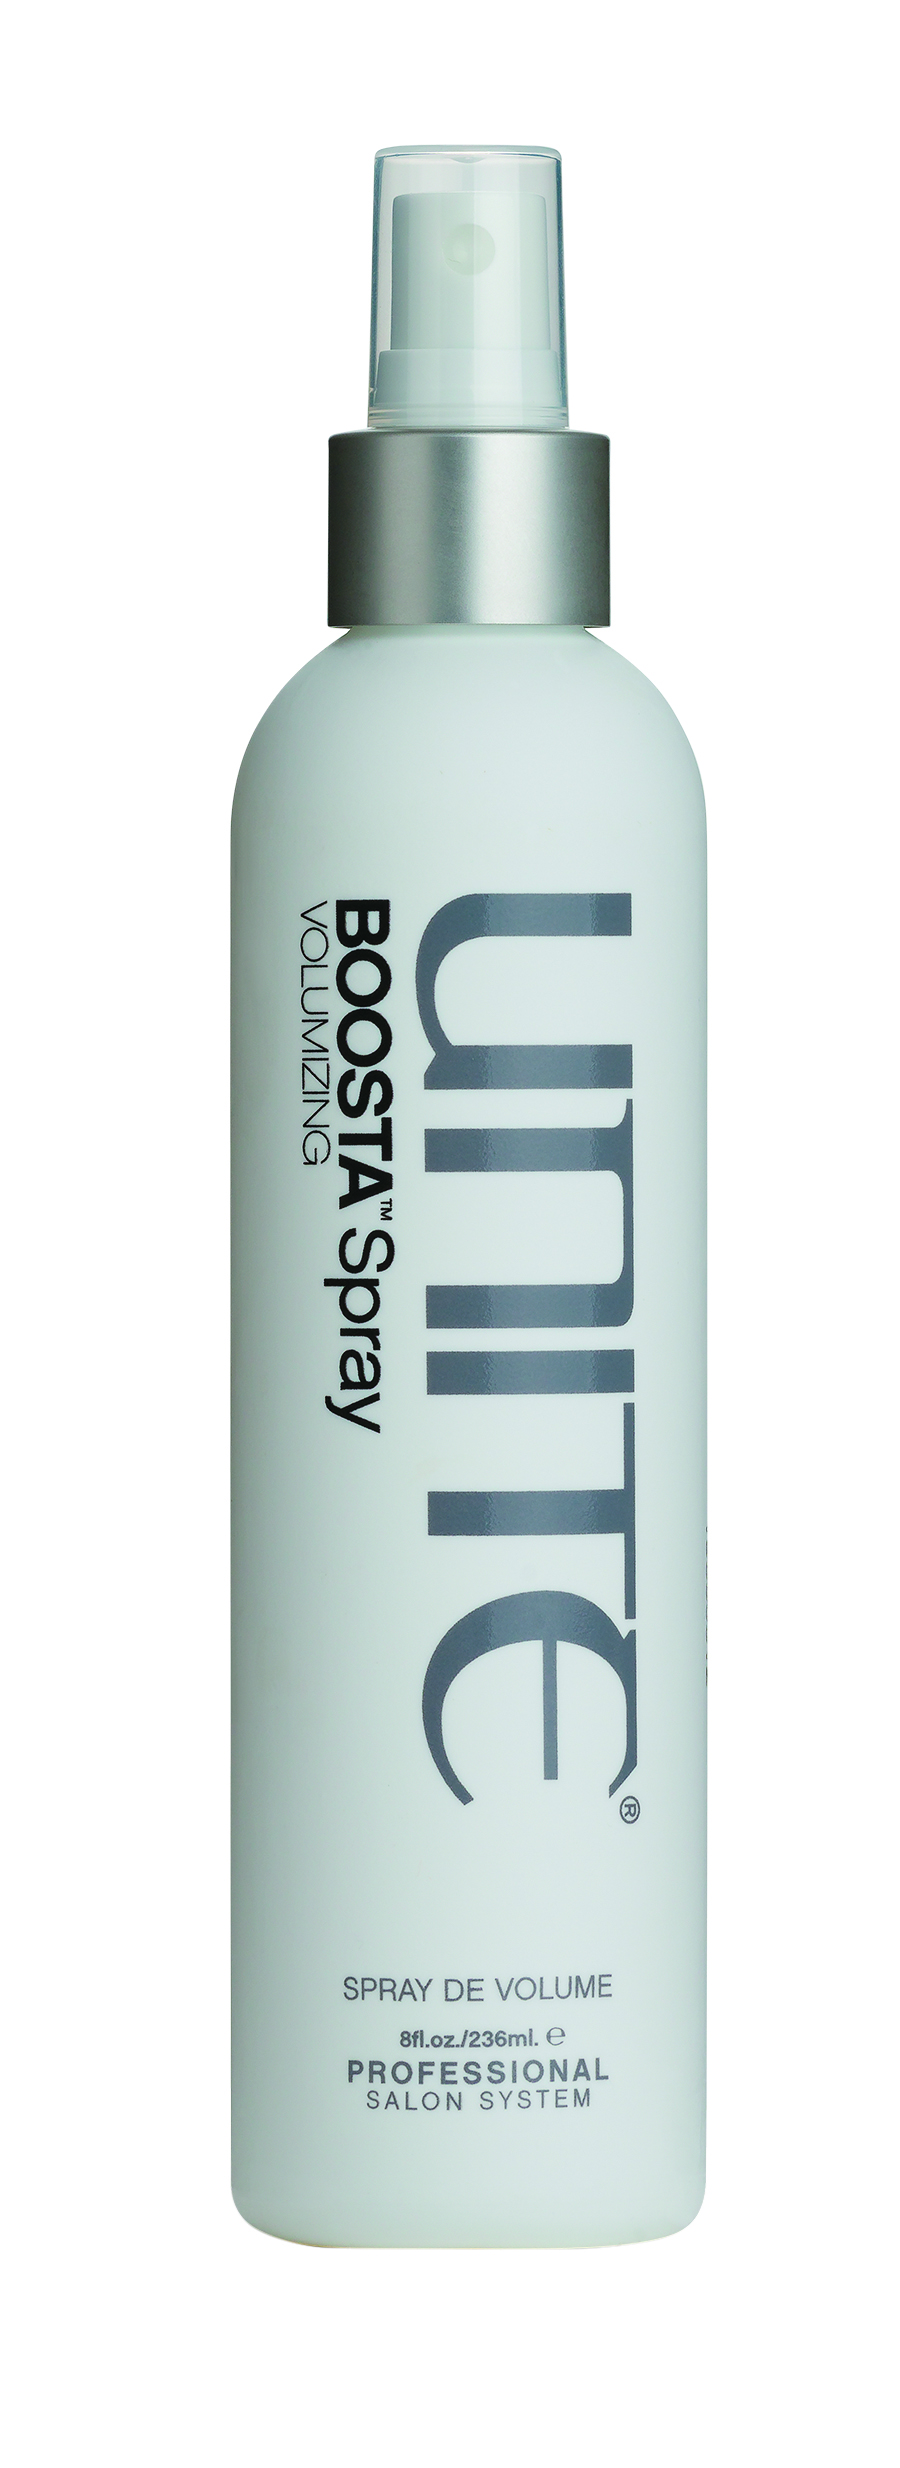 Unite  Boosta Spray enhances texture and shine while building body. The touchable, flexible-hold formula really gives hair a lift.